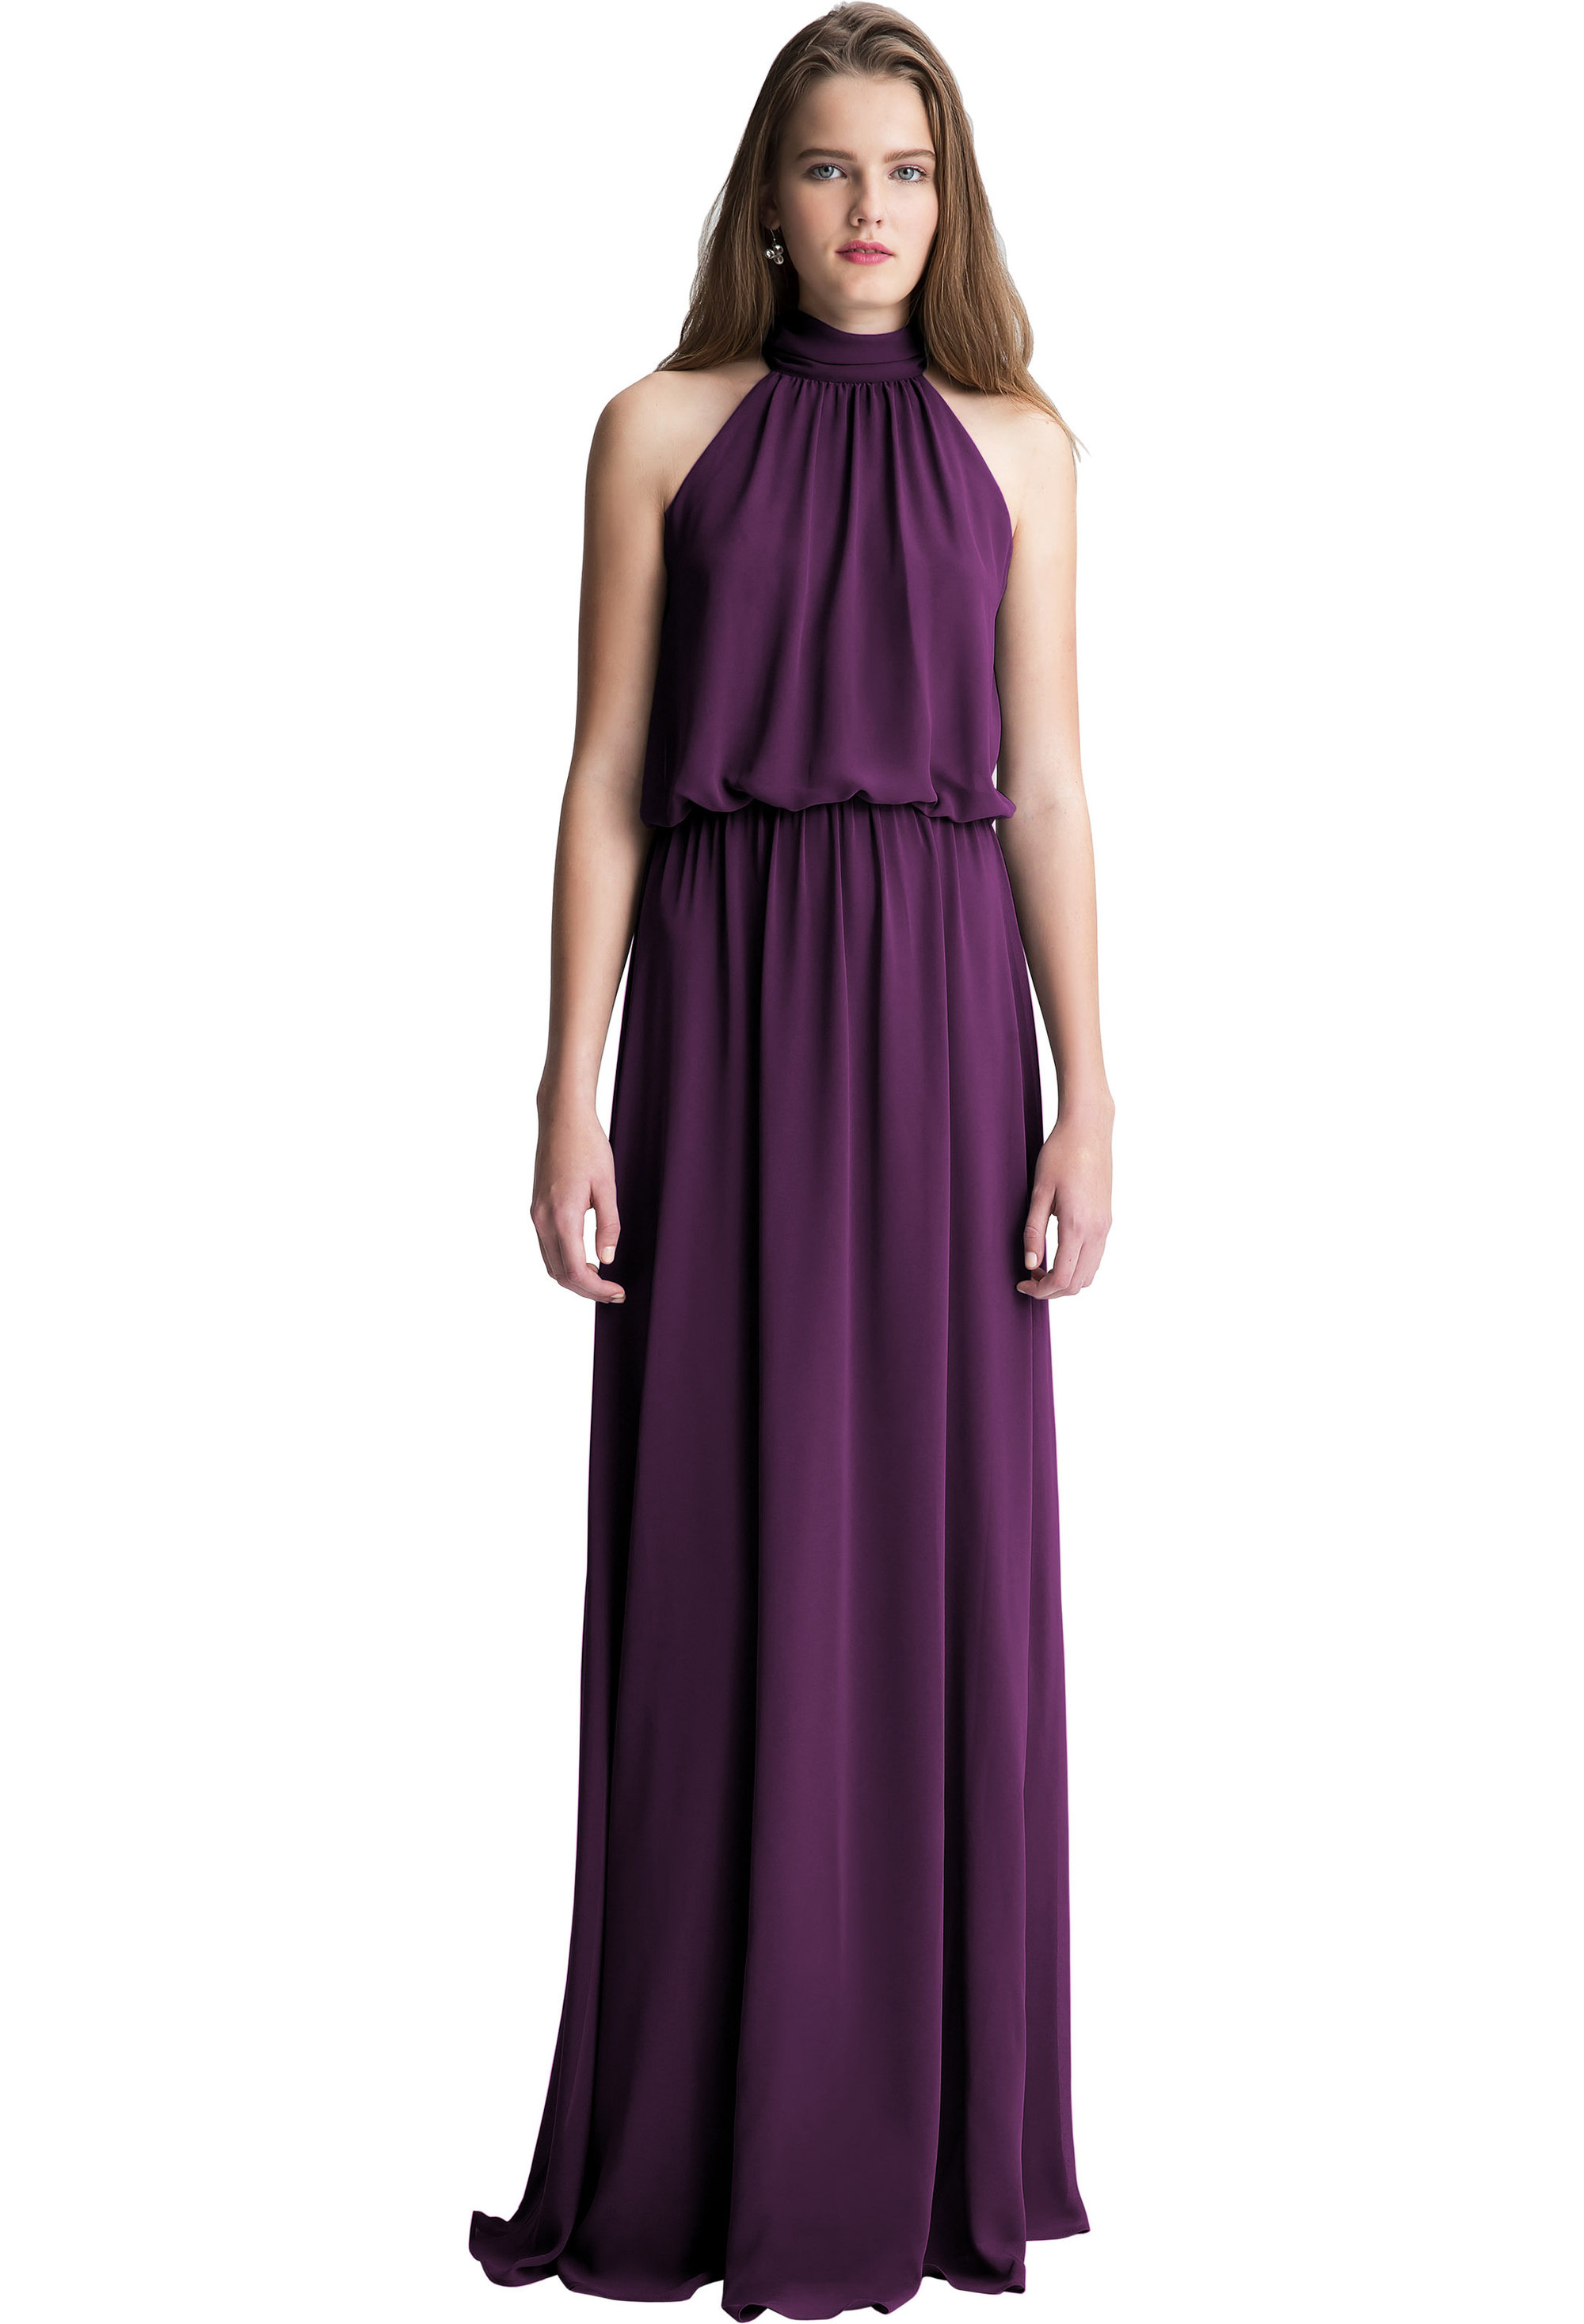 Bill Levkoff SANGRIA Chiffon Halter A-line gown, $150.00 Front